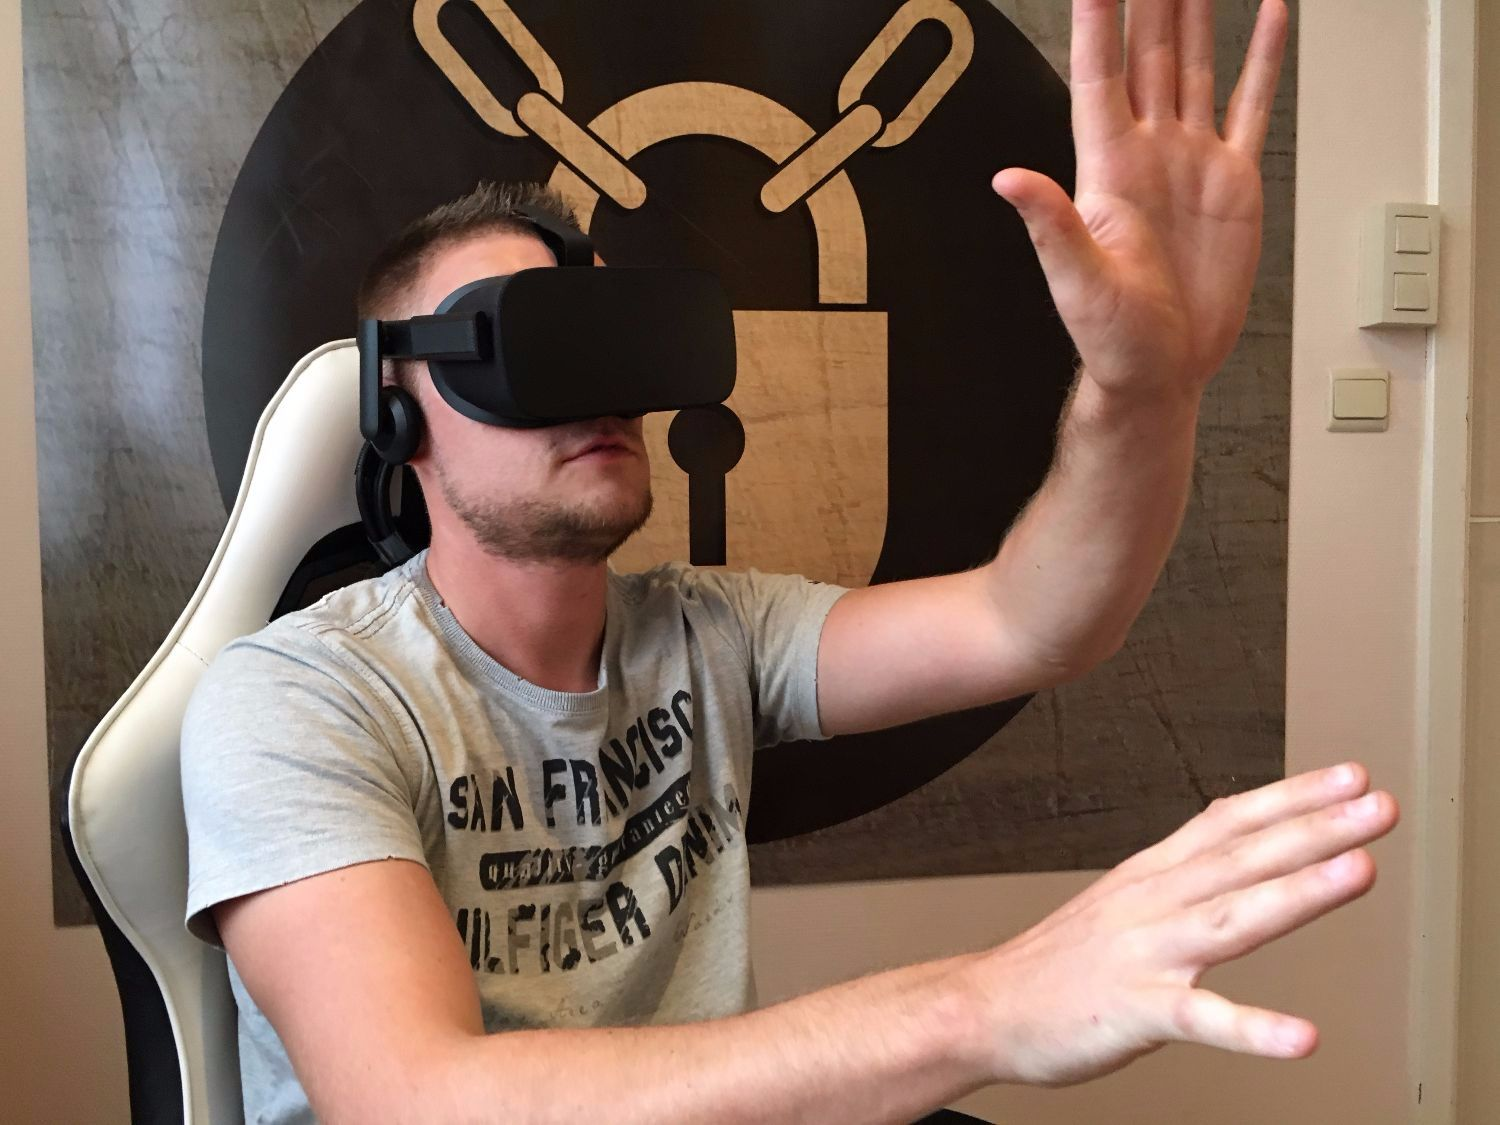 Onze Virtual Reality Room is geopend!